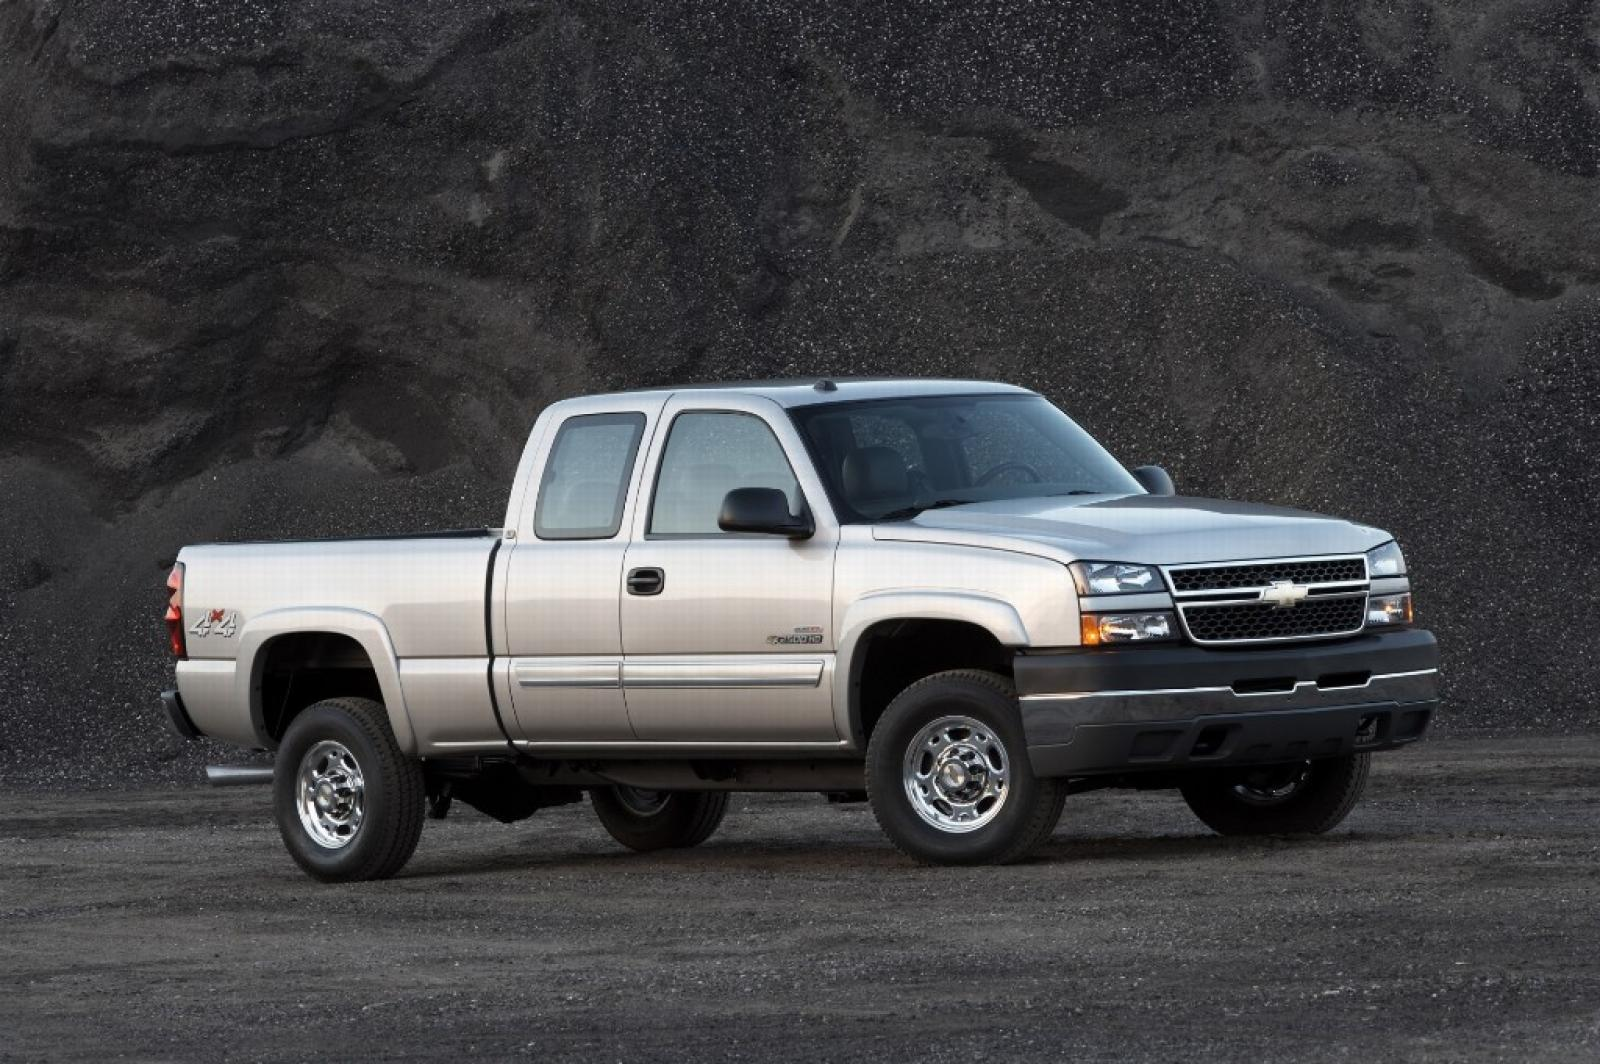 2007 chevrolet silverado 1500 information and photos zombiedrive. Cars Review. Best American Auto & Cars Review